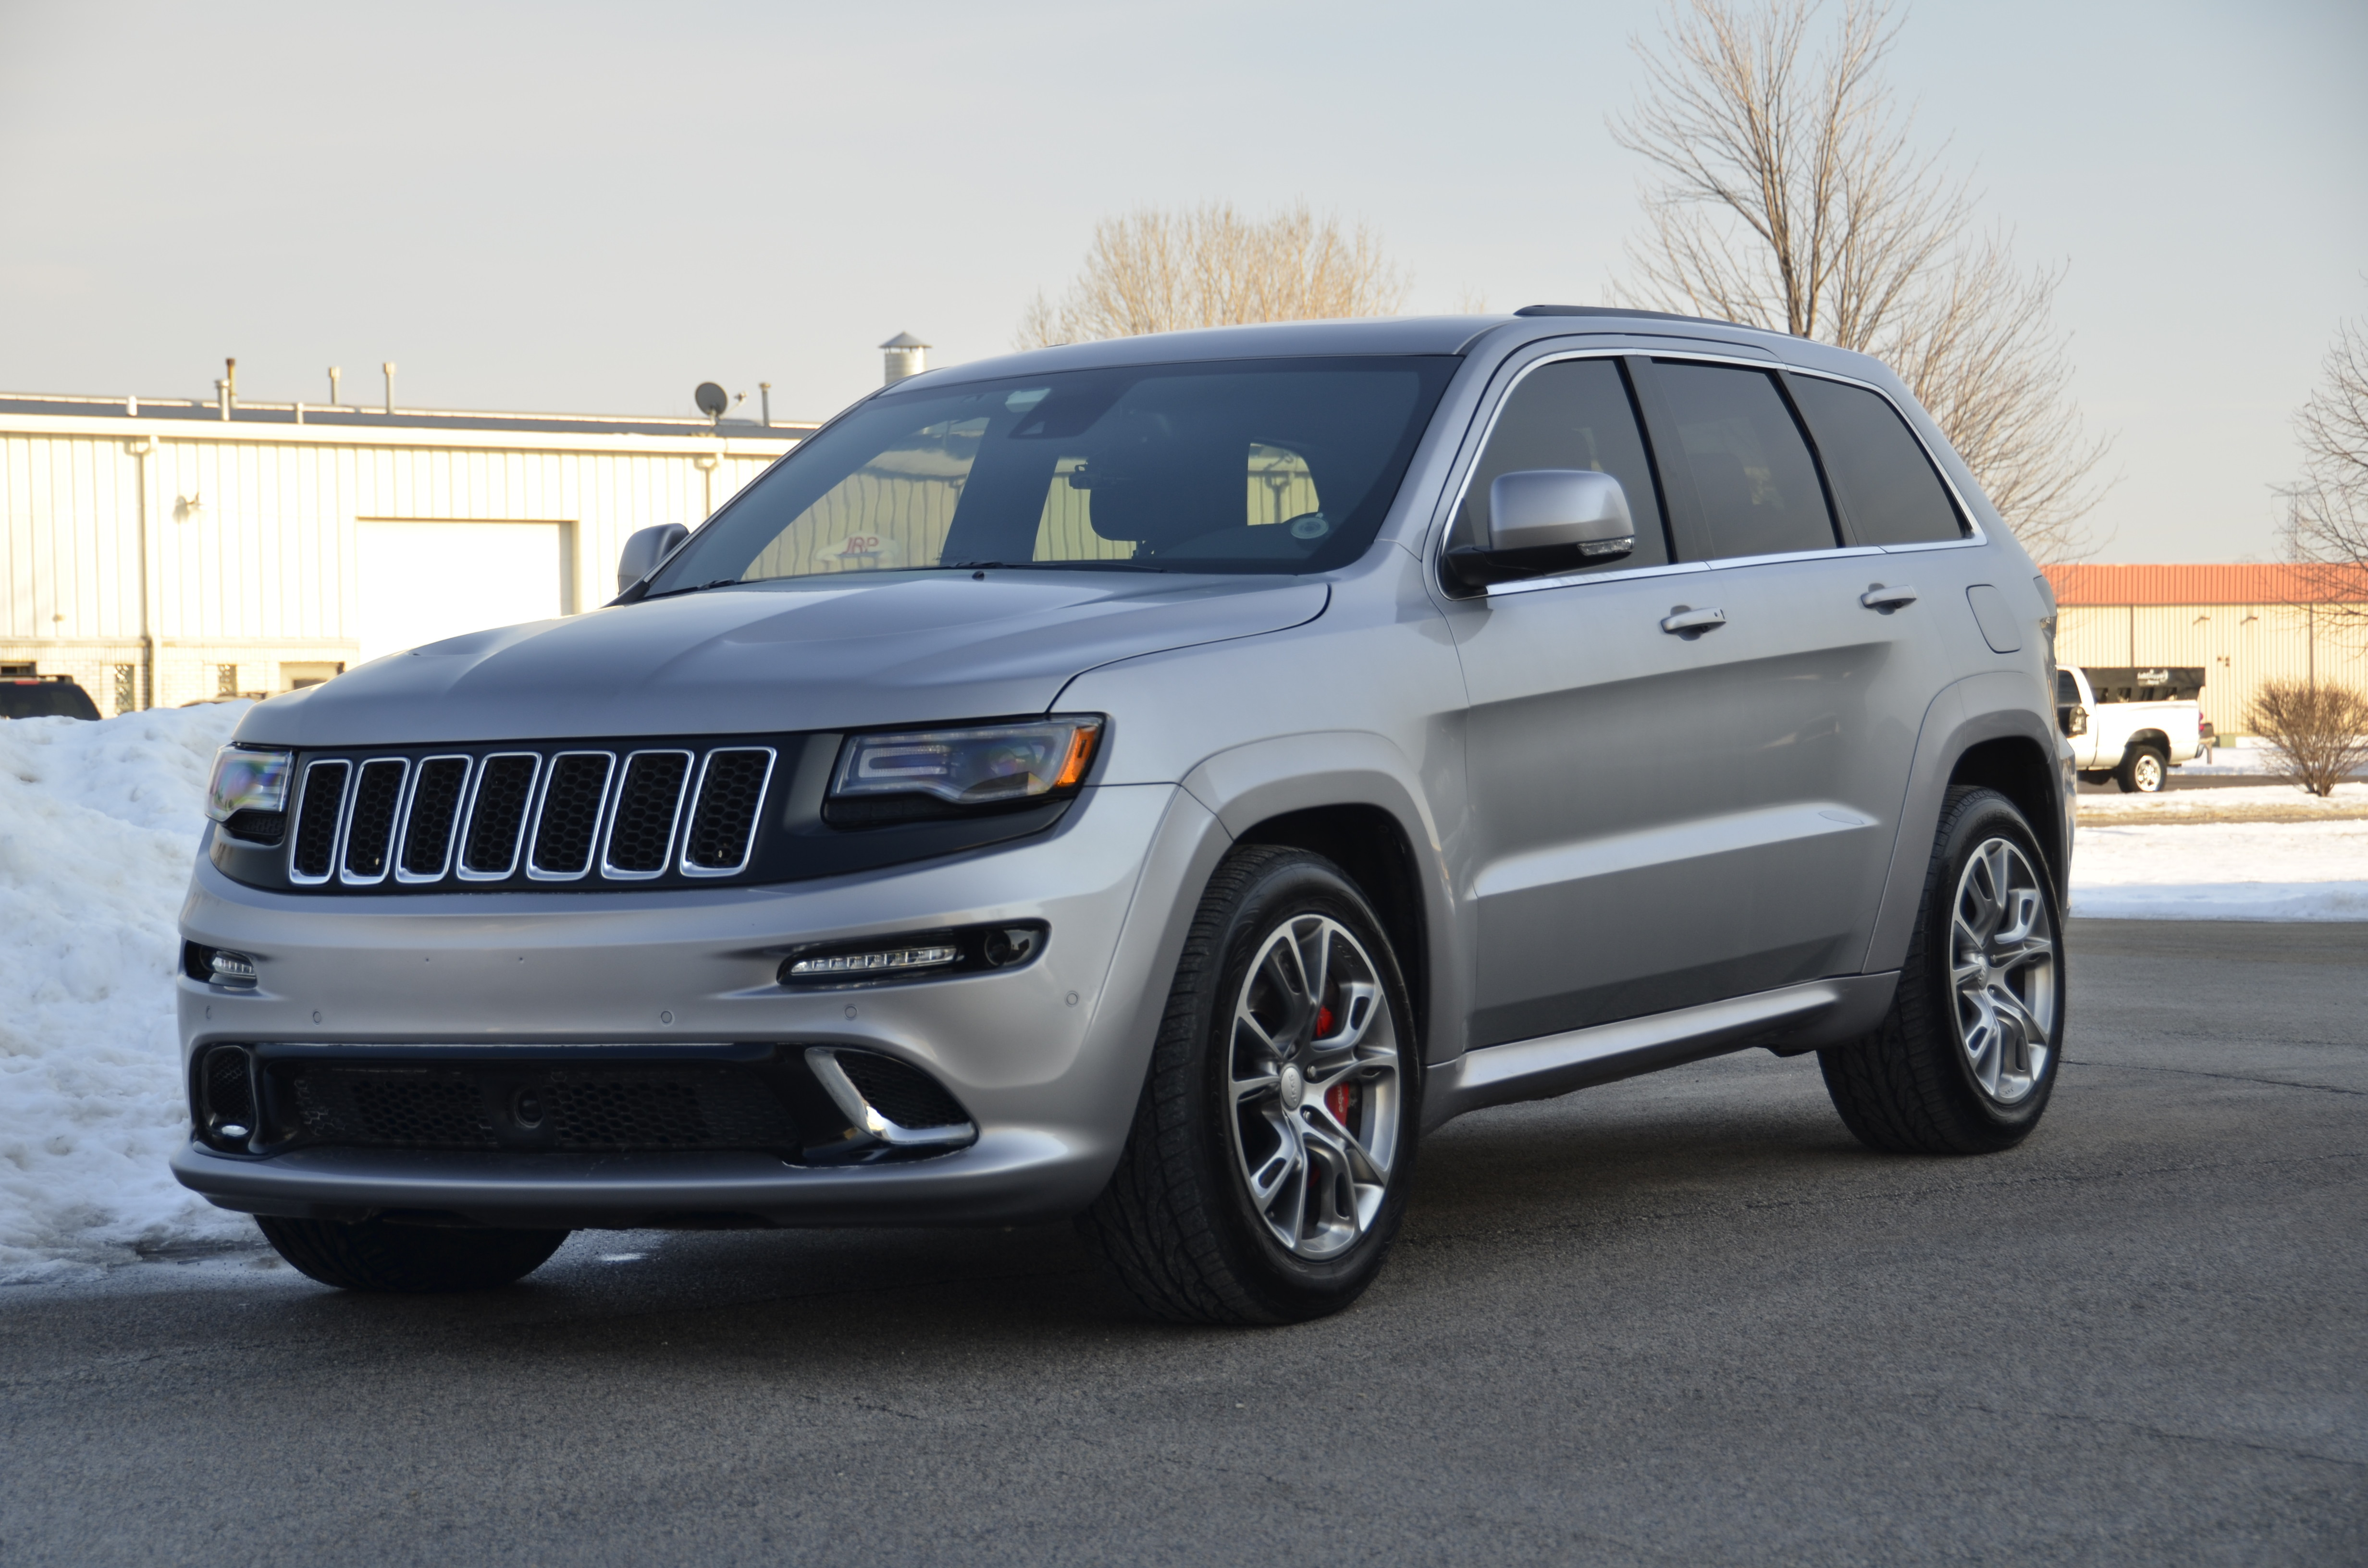 2014 jeep cherokee srt 8 whipple supercharged 0 60 in 3. Black Bedroom Furniture Sets. Home Design Ideas